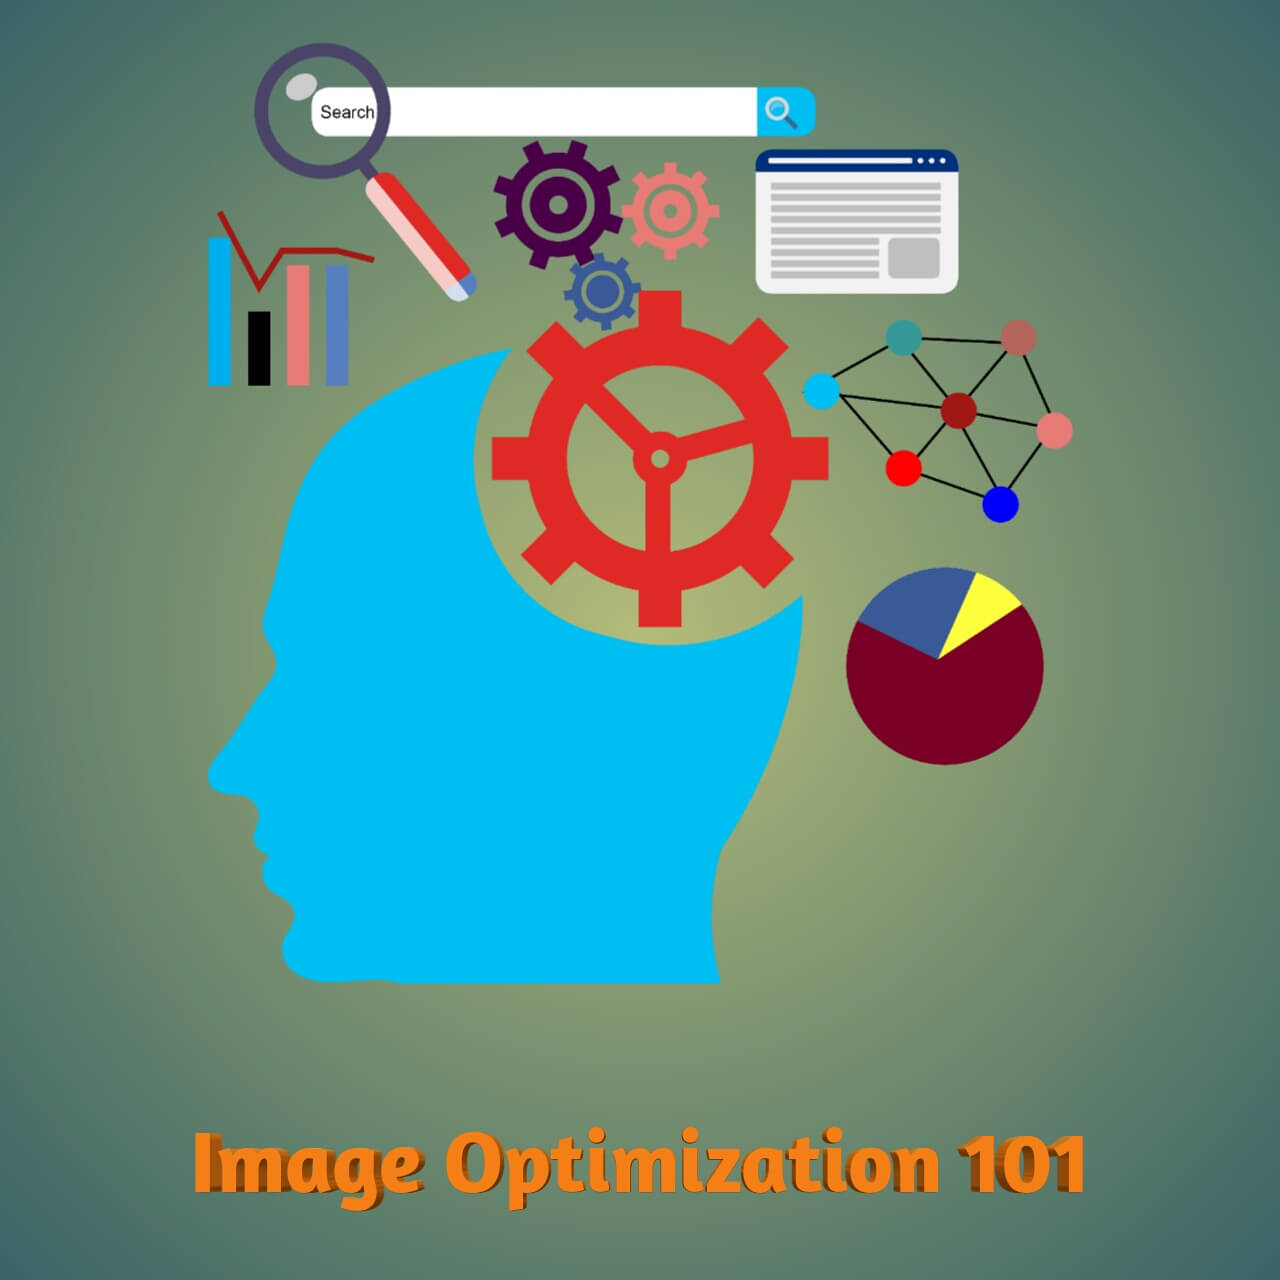 Image-optimization-101-to-rank-higher-in-google-images